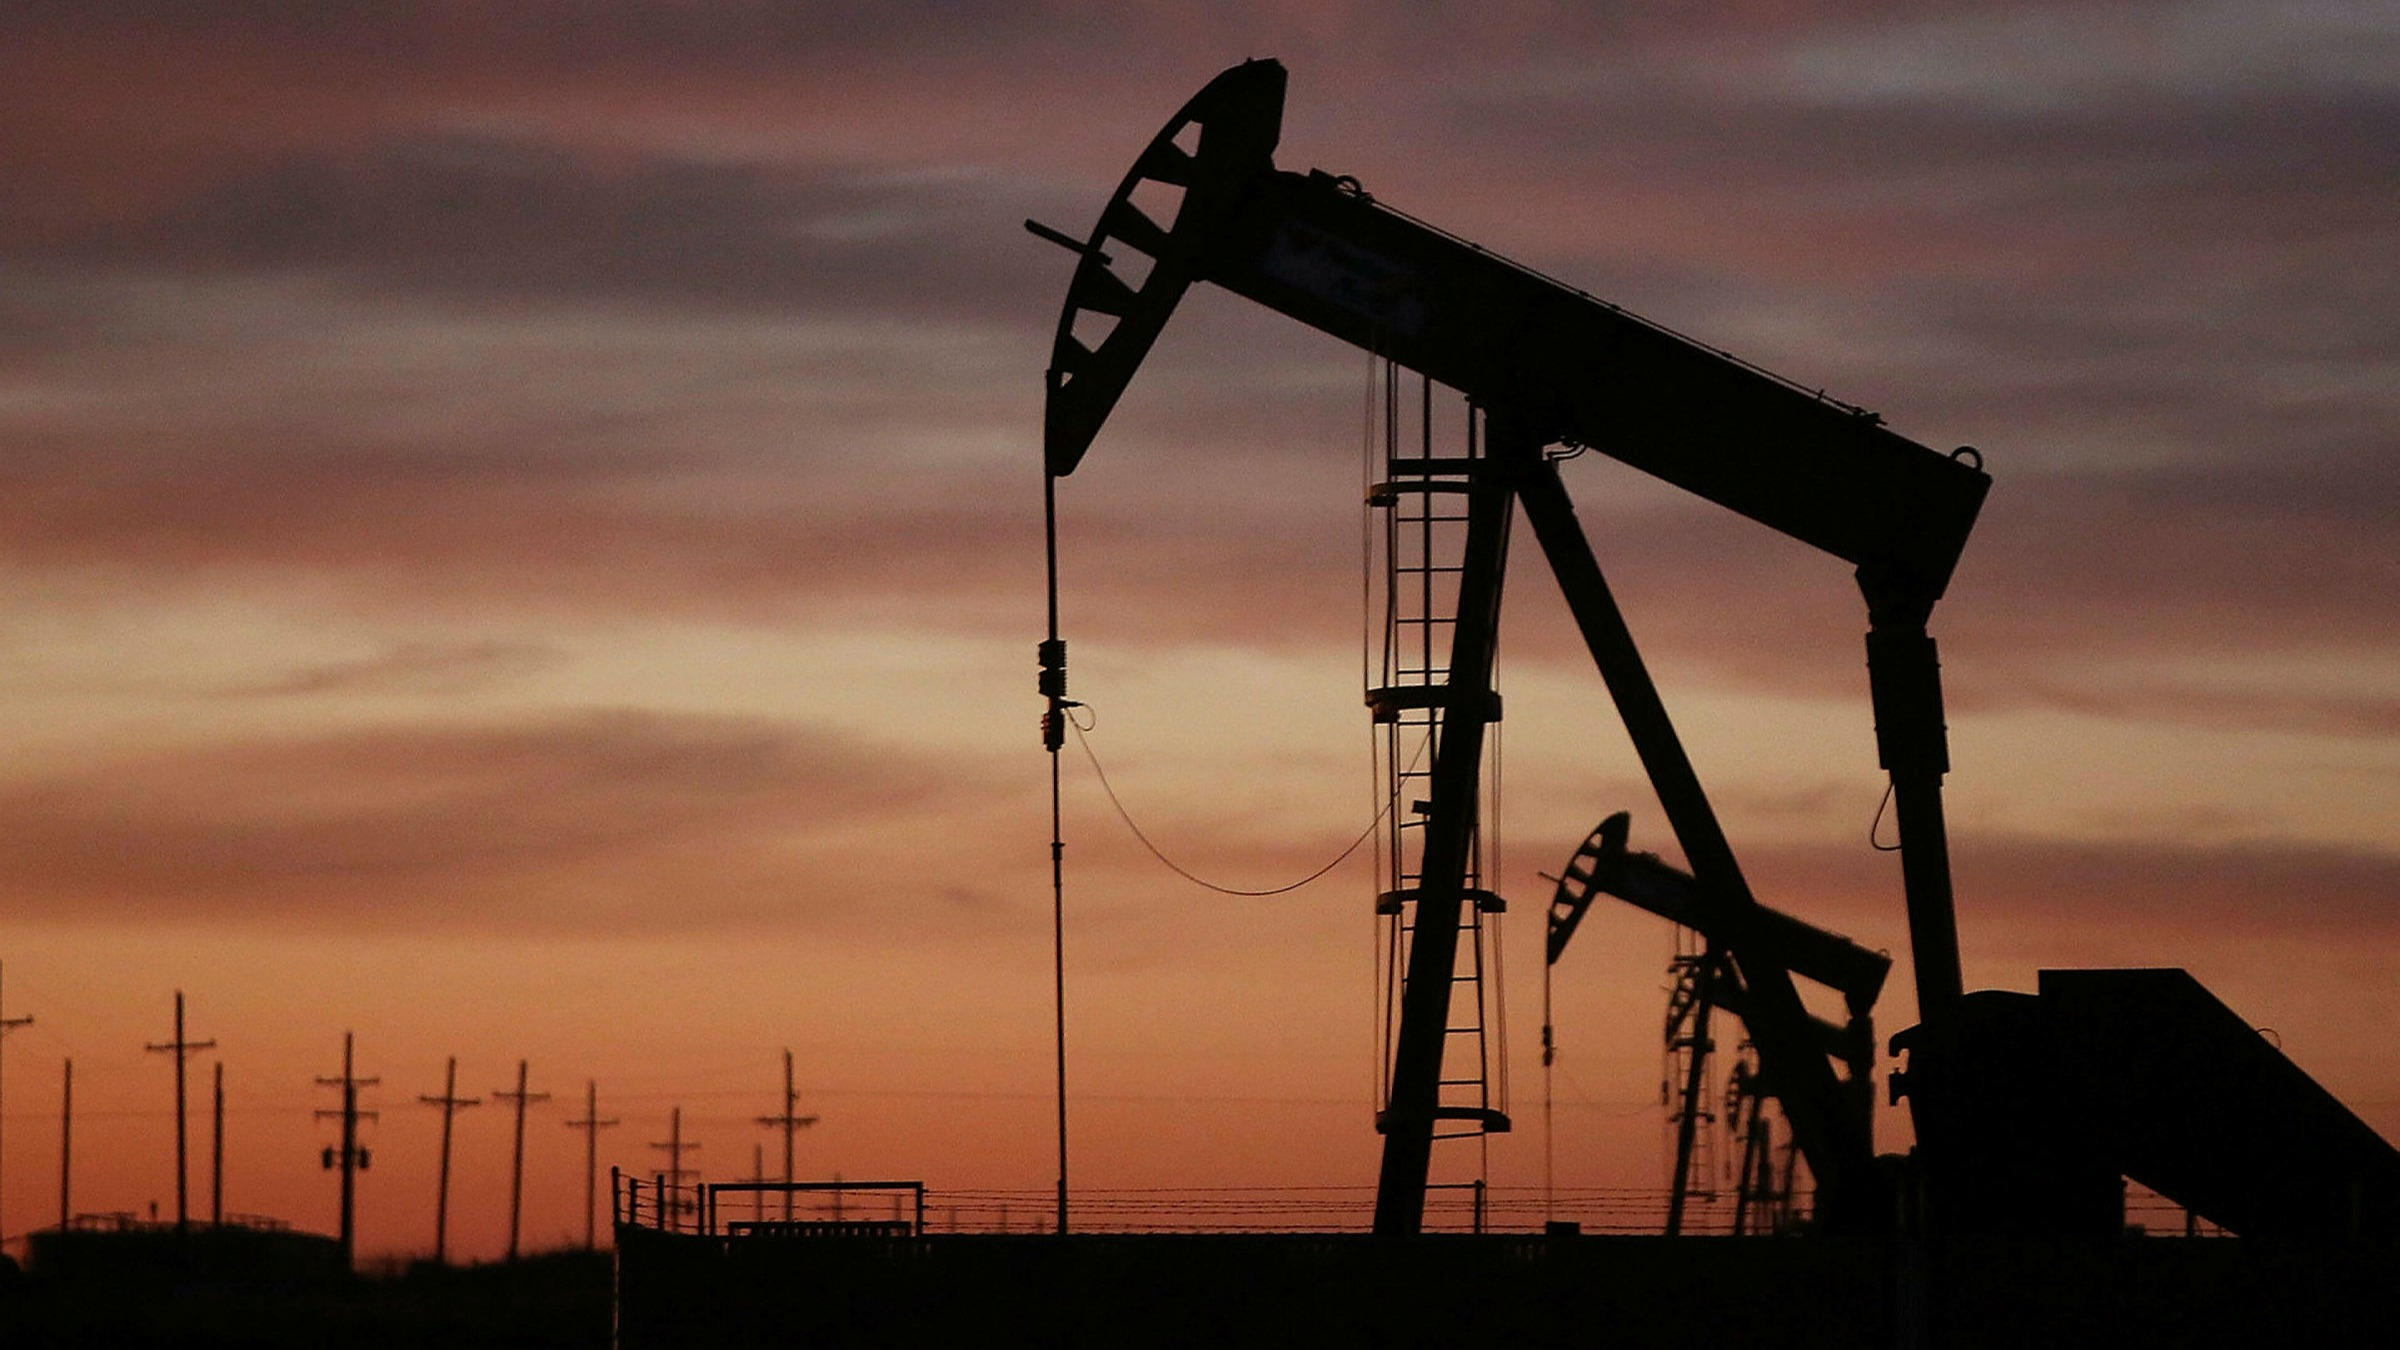 ft.com - Myles McCormick, Justin Jacobs, Amanda Chu and Derek Brower - 'Exceptional' oil boom on crash course with decarbonisation drive